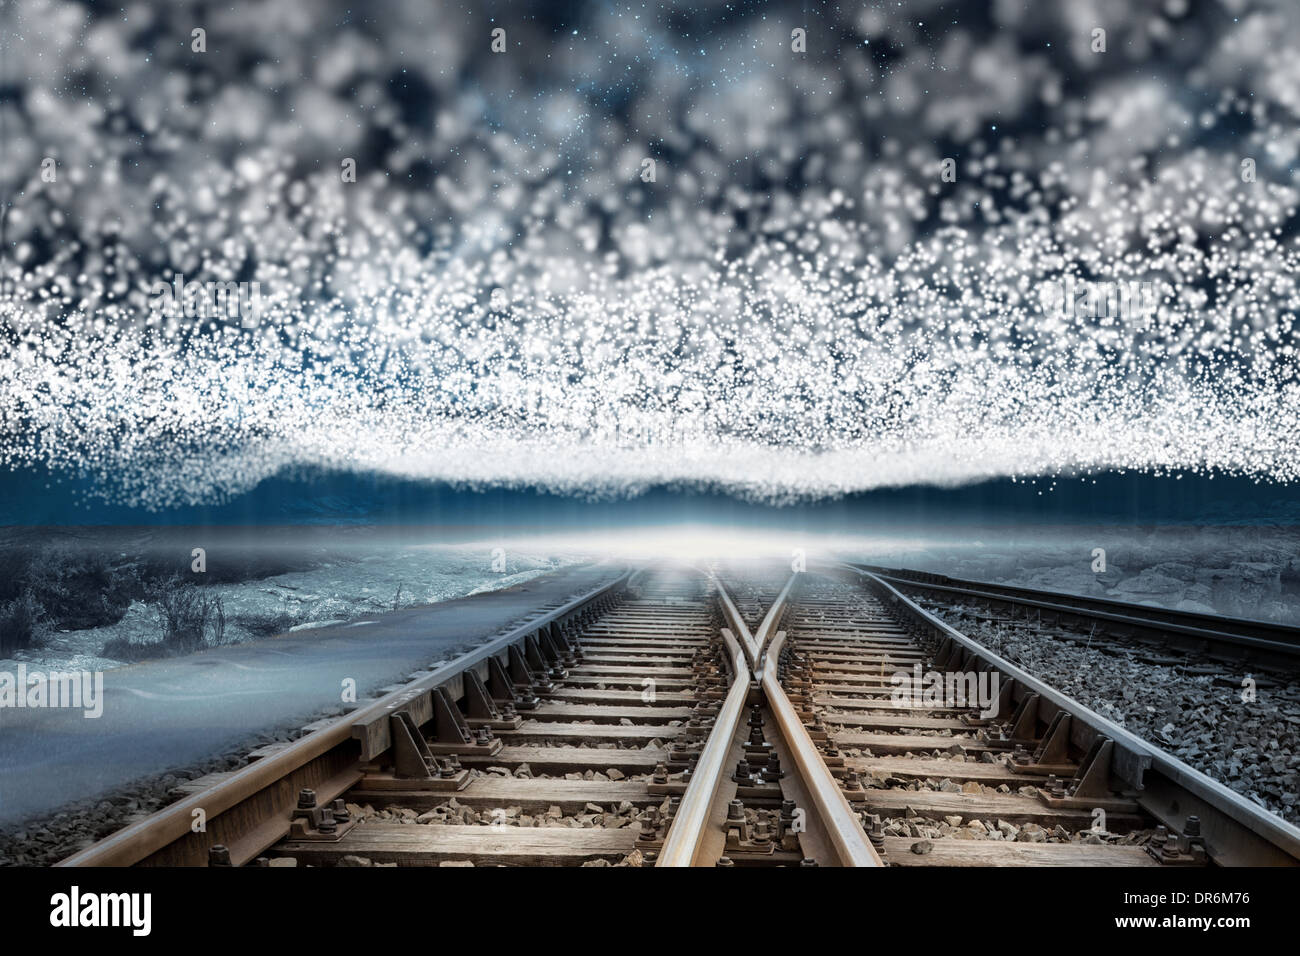 Train tracks under blanket of bright stars - Stock Image